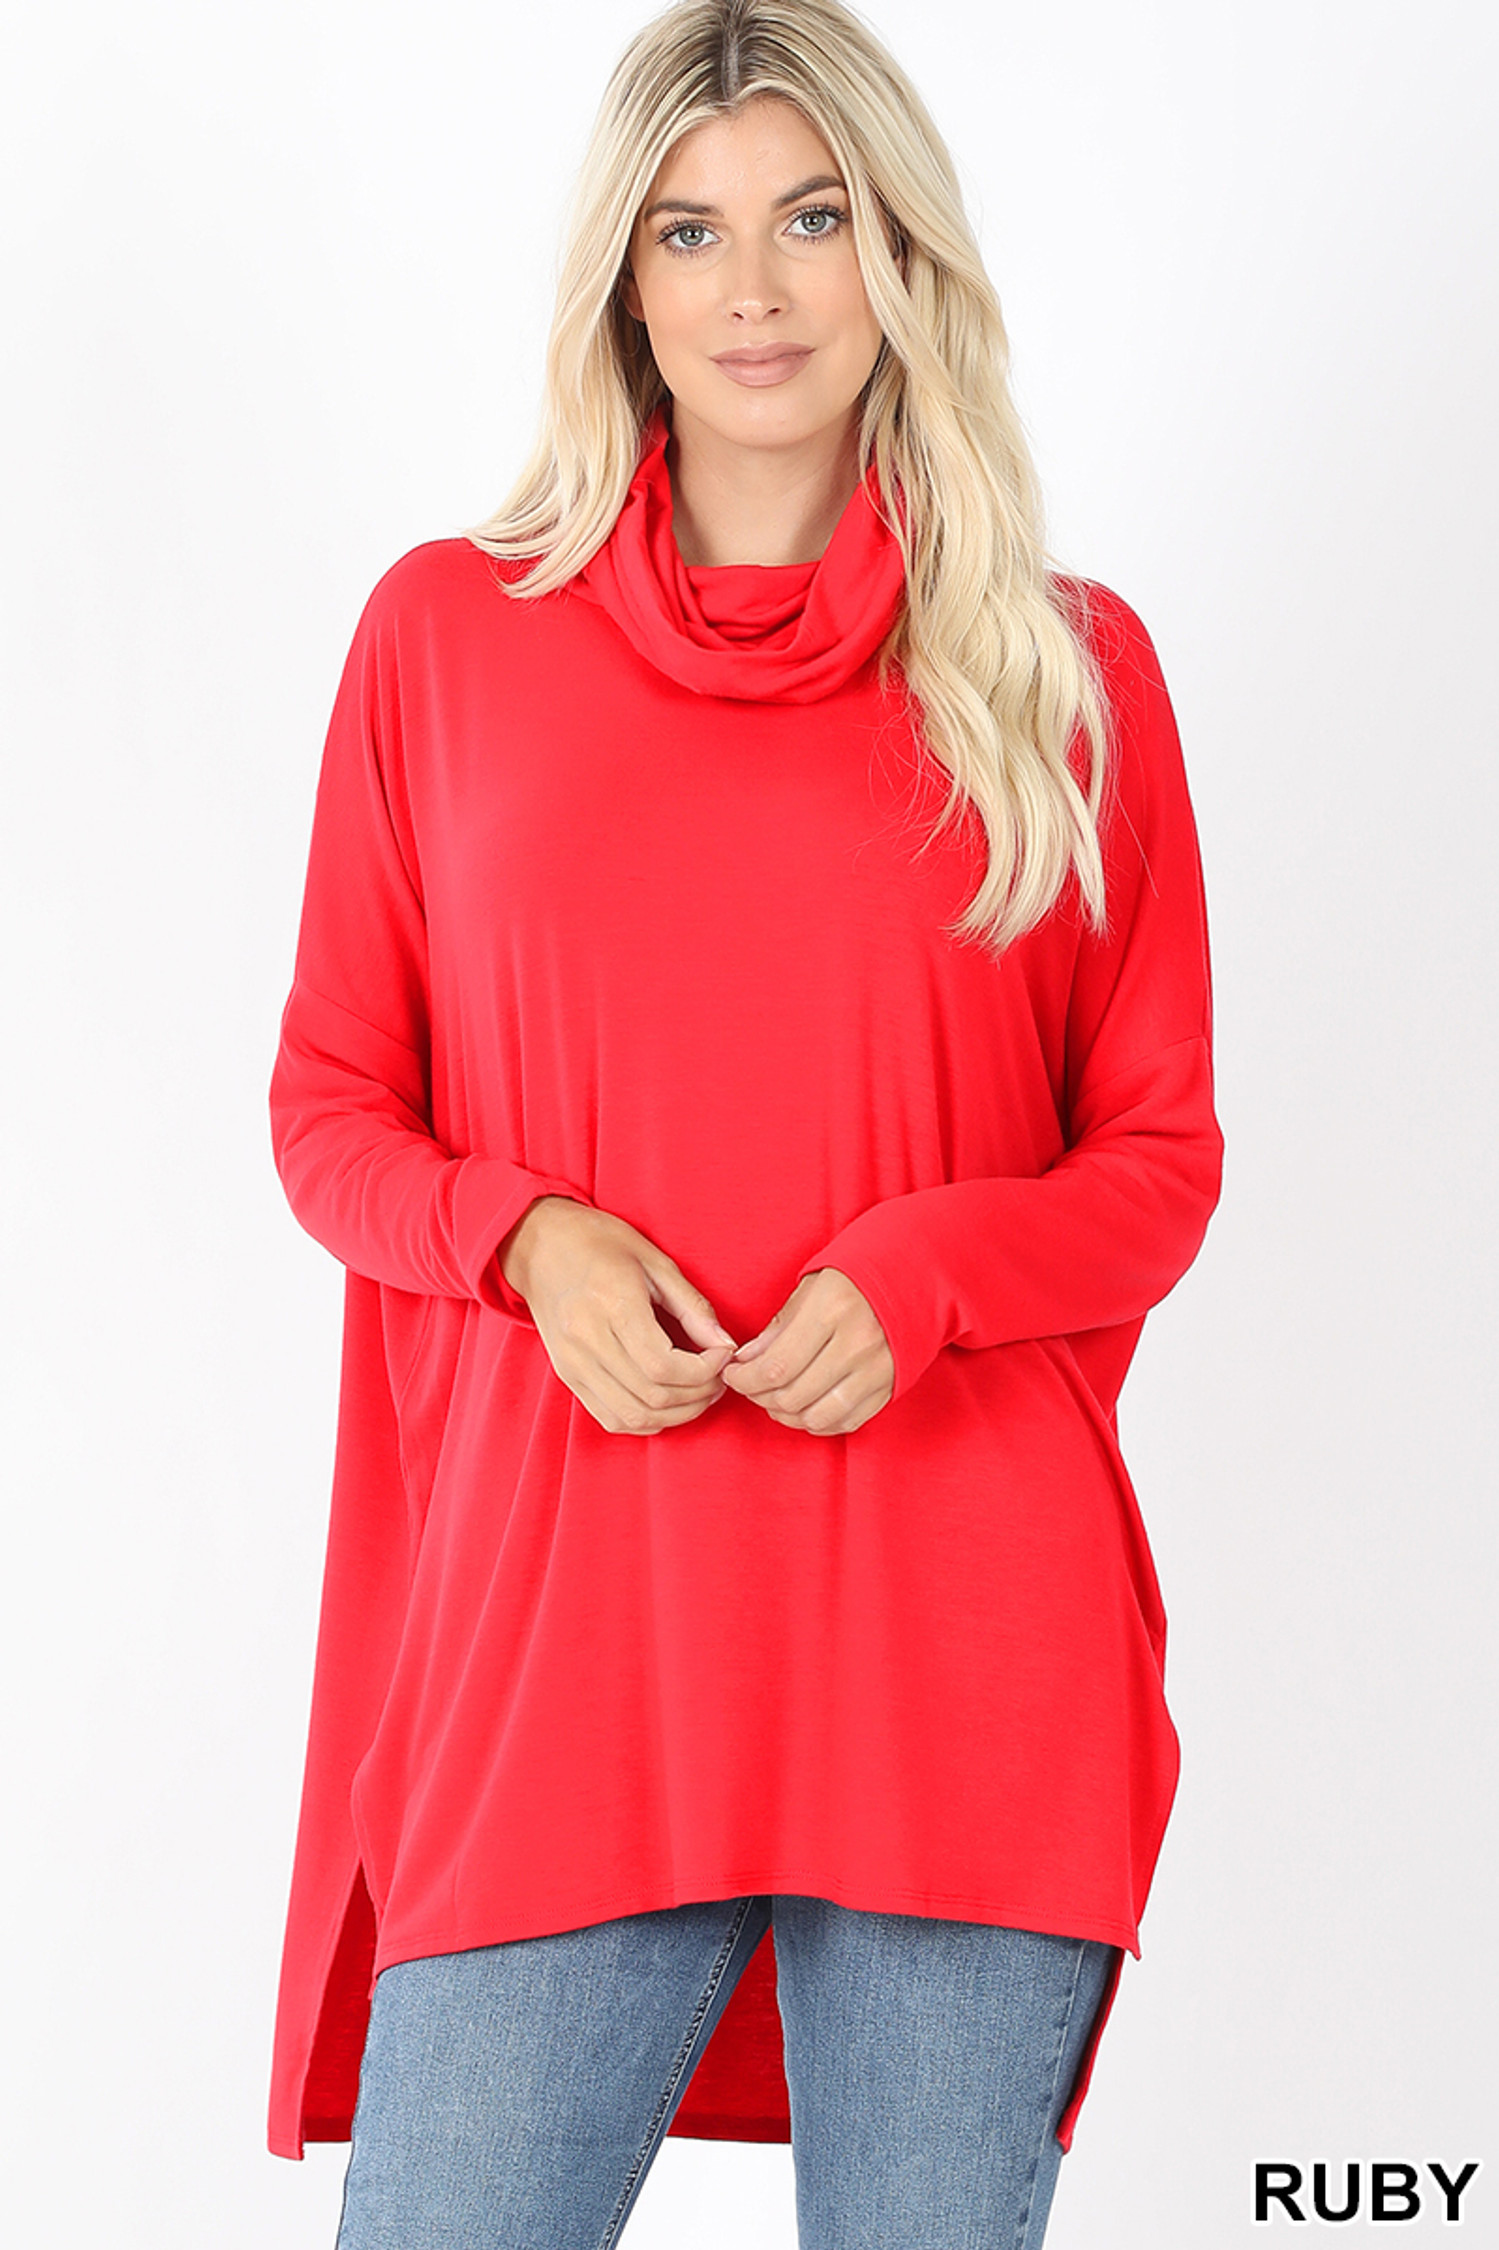 Front image of Ruby Cowl Neck Hi-Low Long Sleeve Top